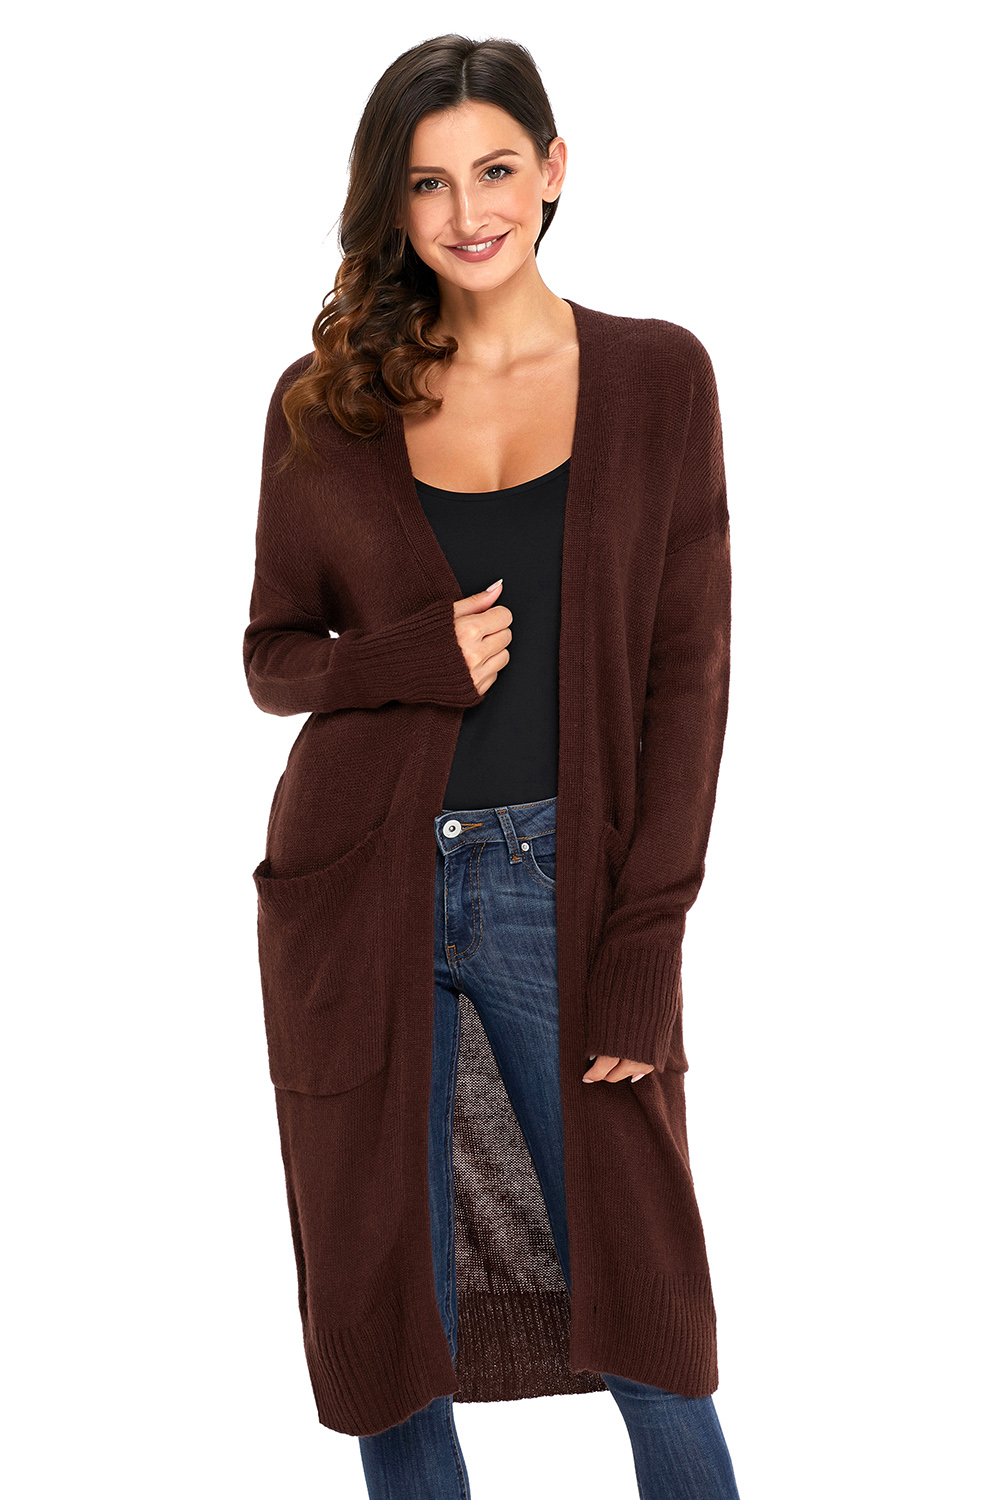 drapes knitwear products front lafayette open enlarged women cardigan draped clothing